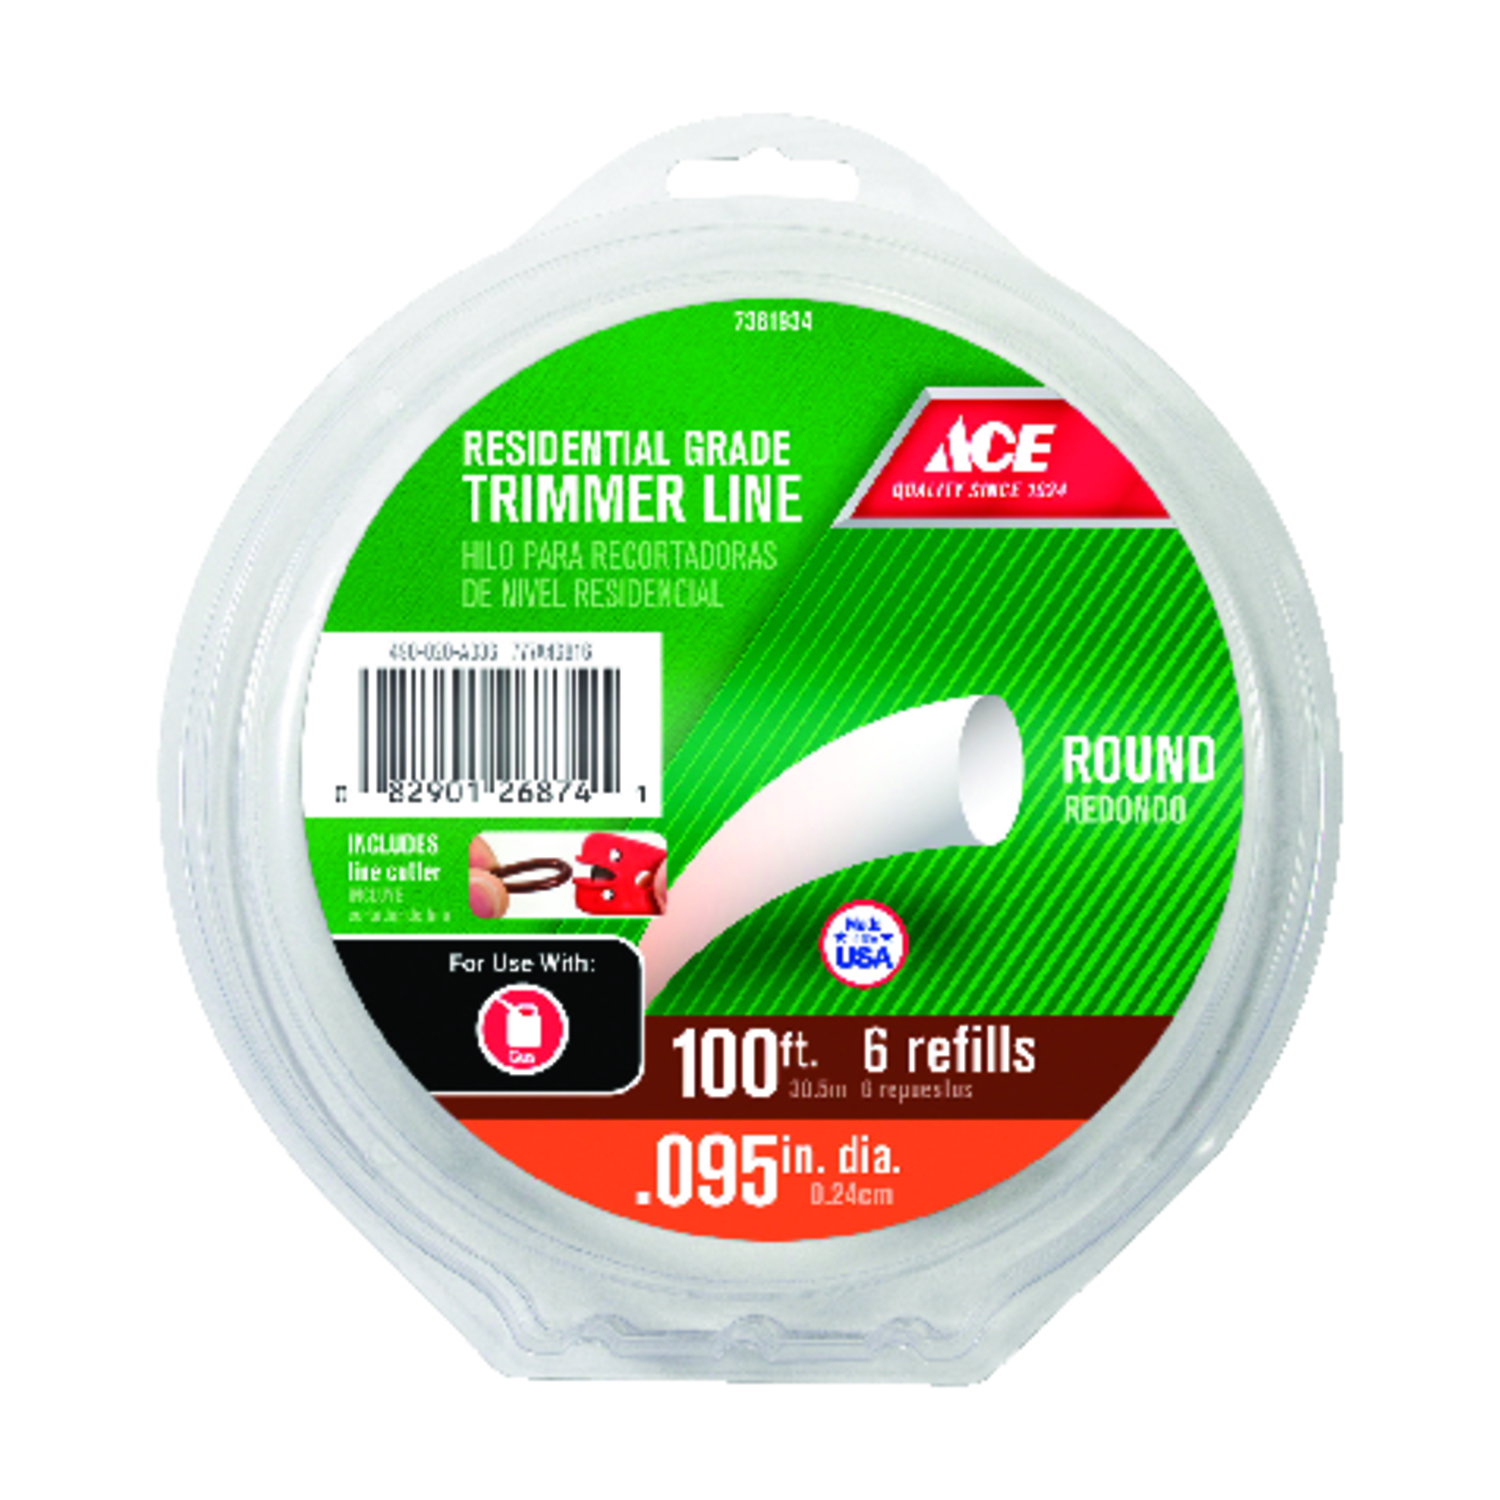 Ace  Residential Grade  Trimmer Line